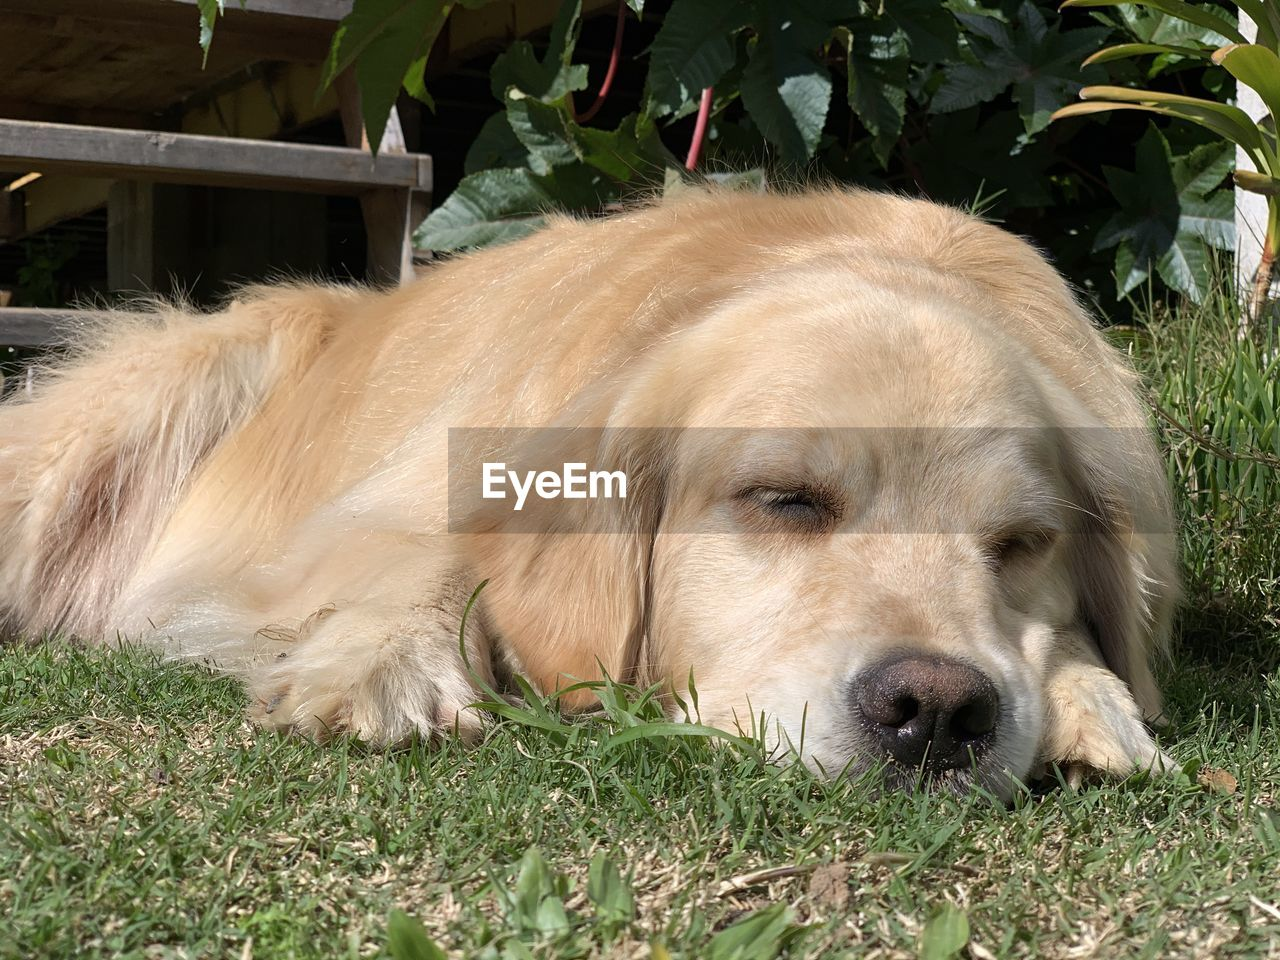 one animal, animal themes, animal, mammal, pets, domestic, domestic animals, dog, canine, vertebrate, relaxation, plant, resting, no people, grass, close-up, portrait, nature, lying down, day, animal head